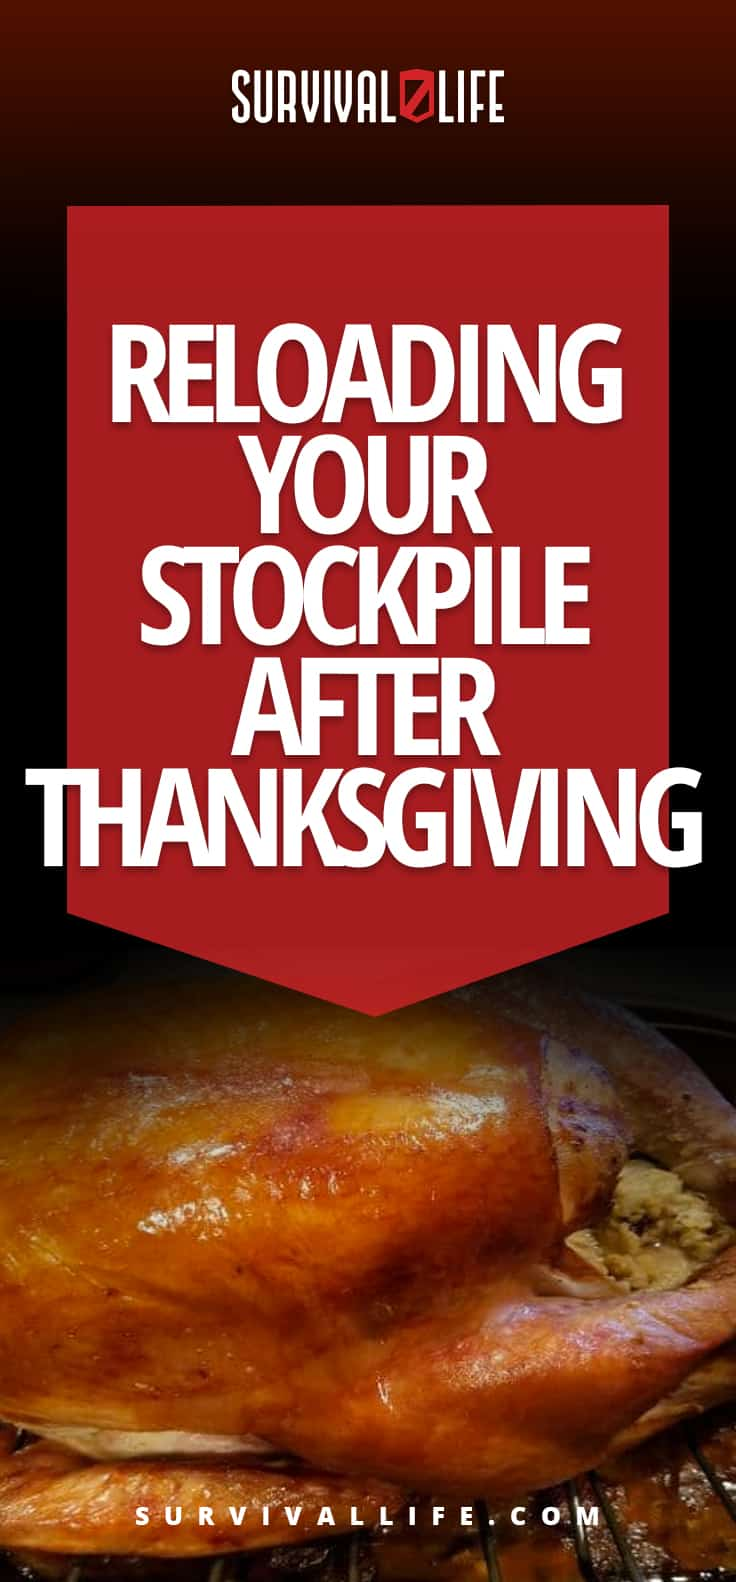 Reloading Your Stockpile After Thanksgiving